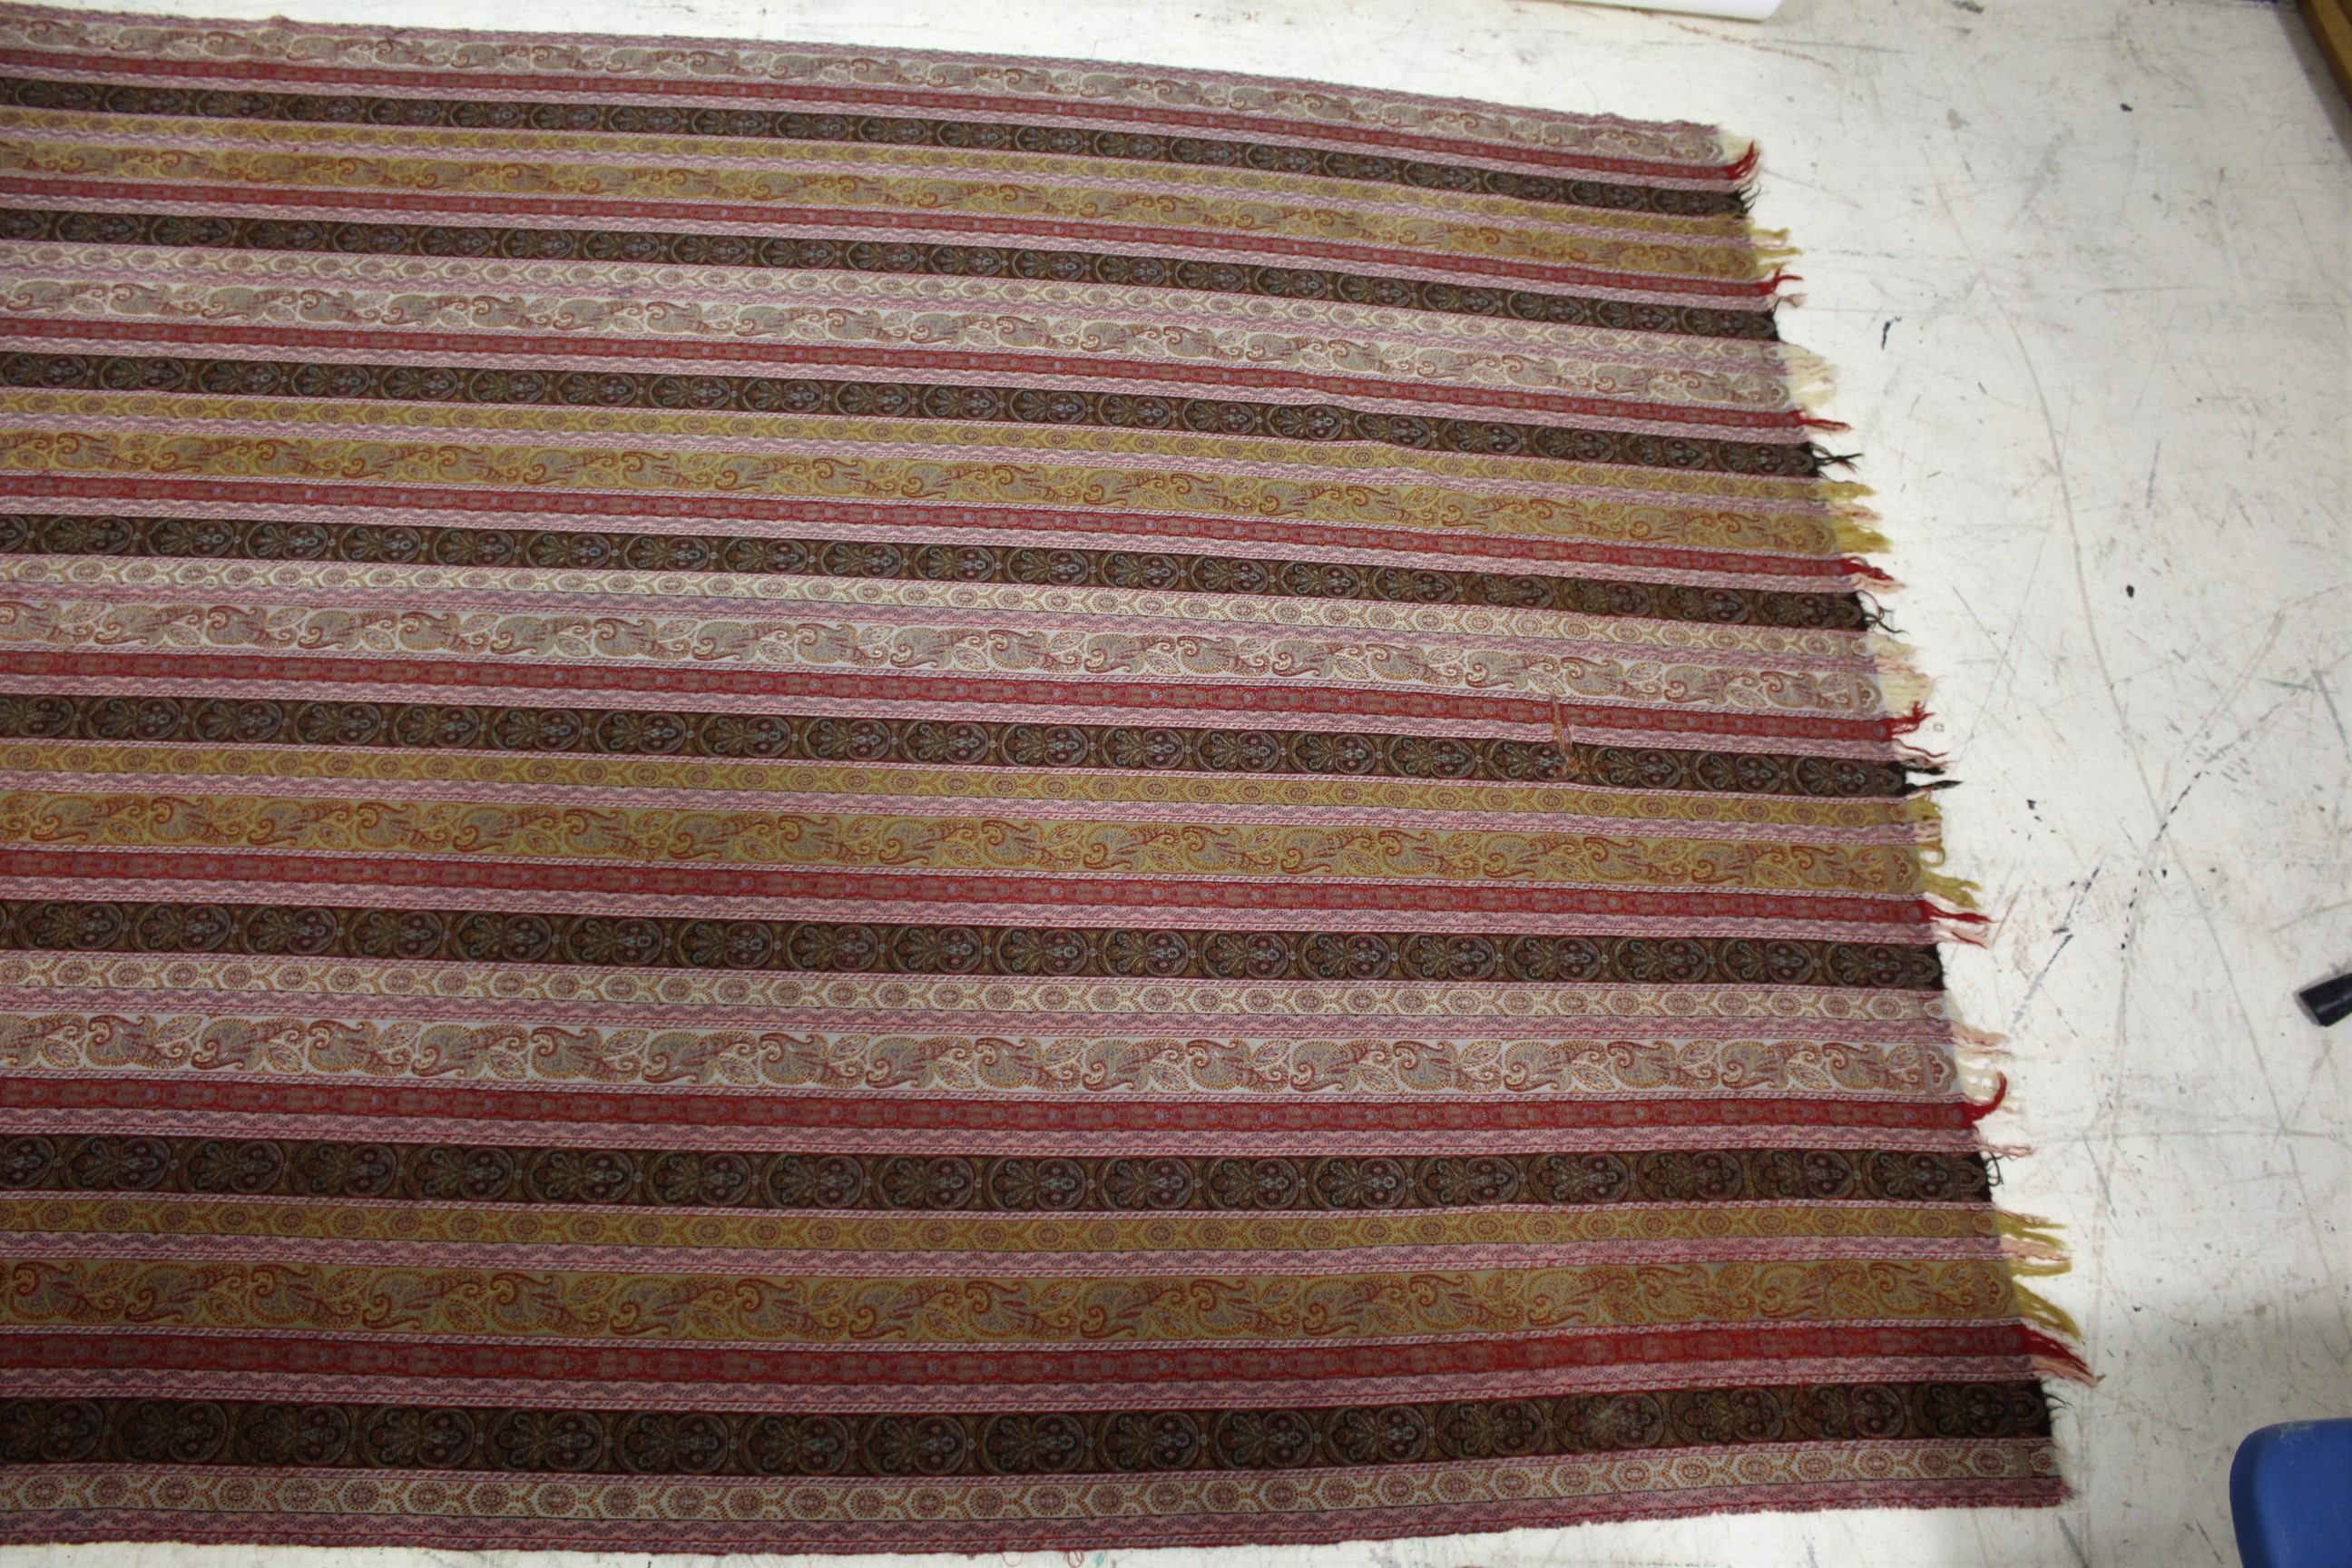 Lot 1908 - LARGE PAISLEY SHAWL a large wool shawl with repeating floral motifs within horizontal bands, and